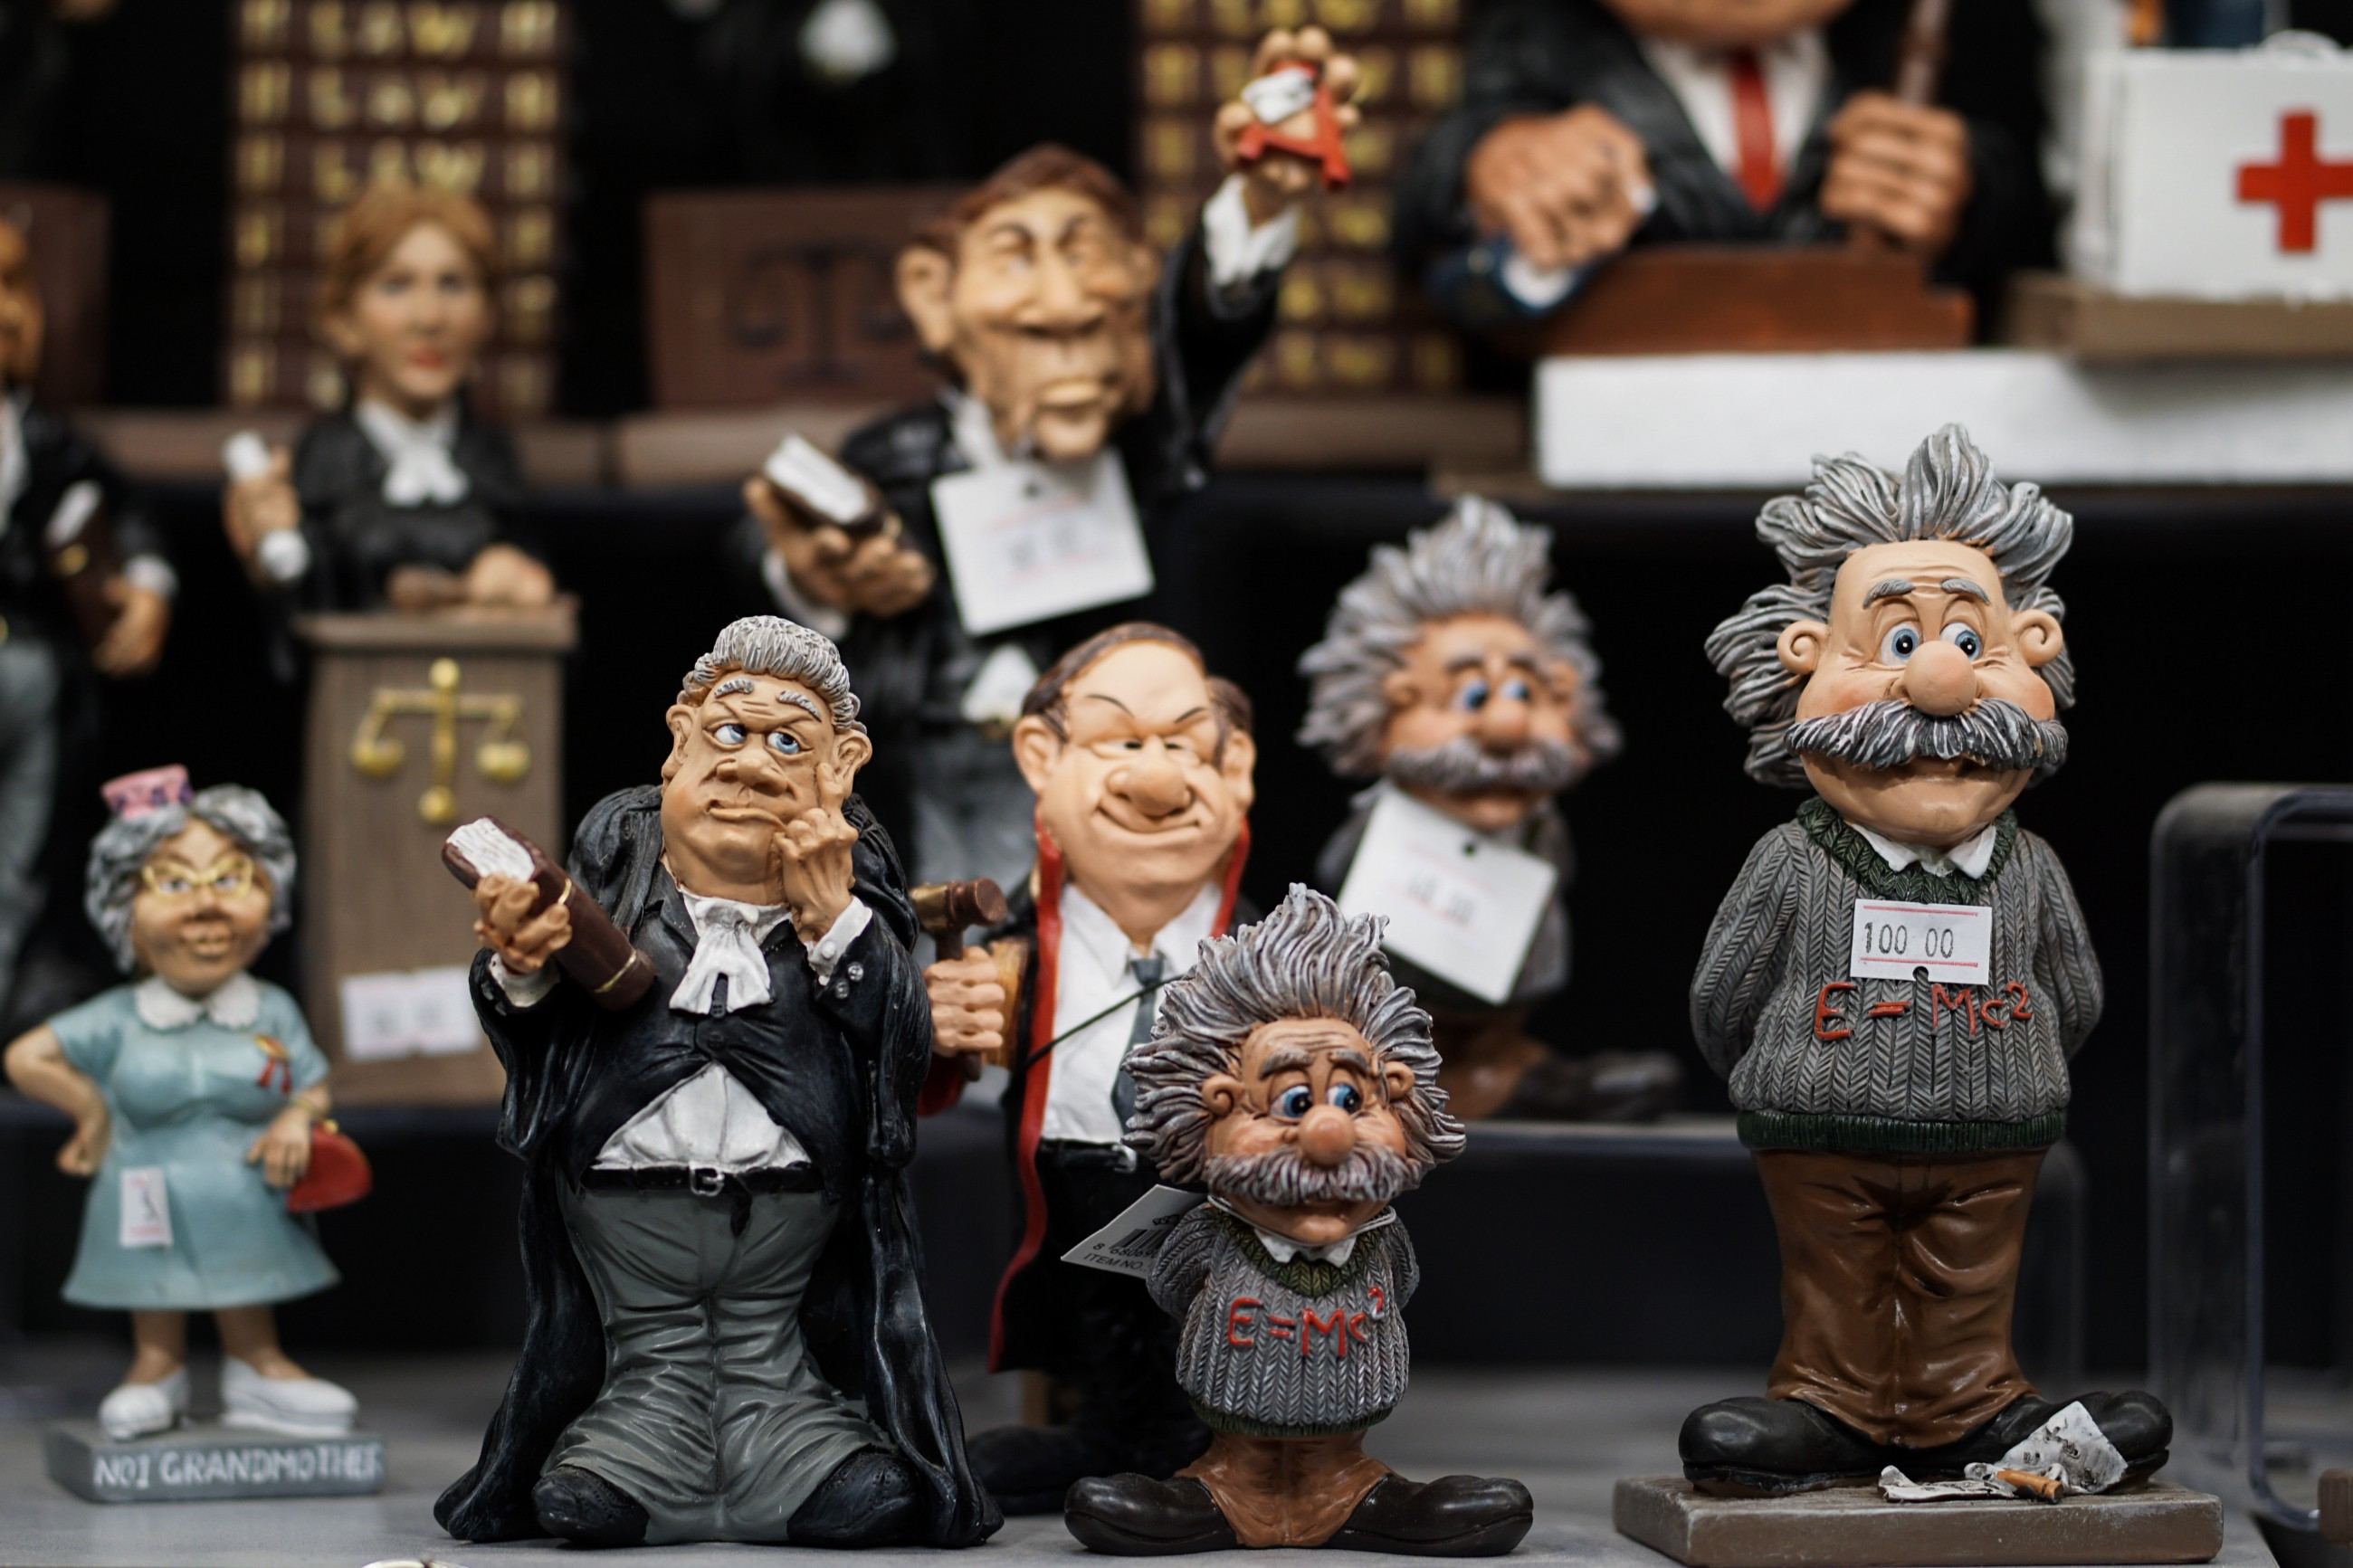 Albert Einstein In His Famous  Essay On Race The Negro Question Assorted Ceramic Figurines By Ugur Peker On Unsplash Custom Writting Service also Lab Report Writers Best  High School Argumentative Essay Examples